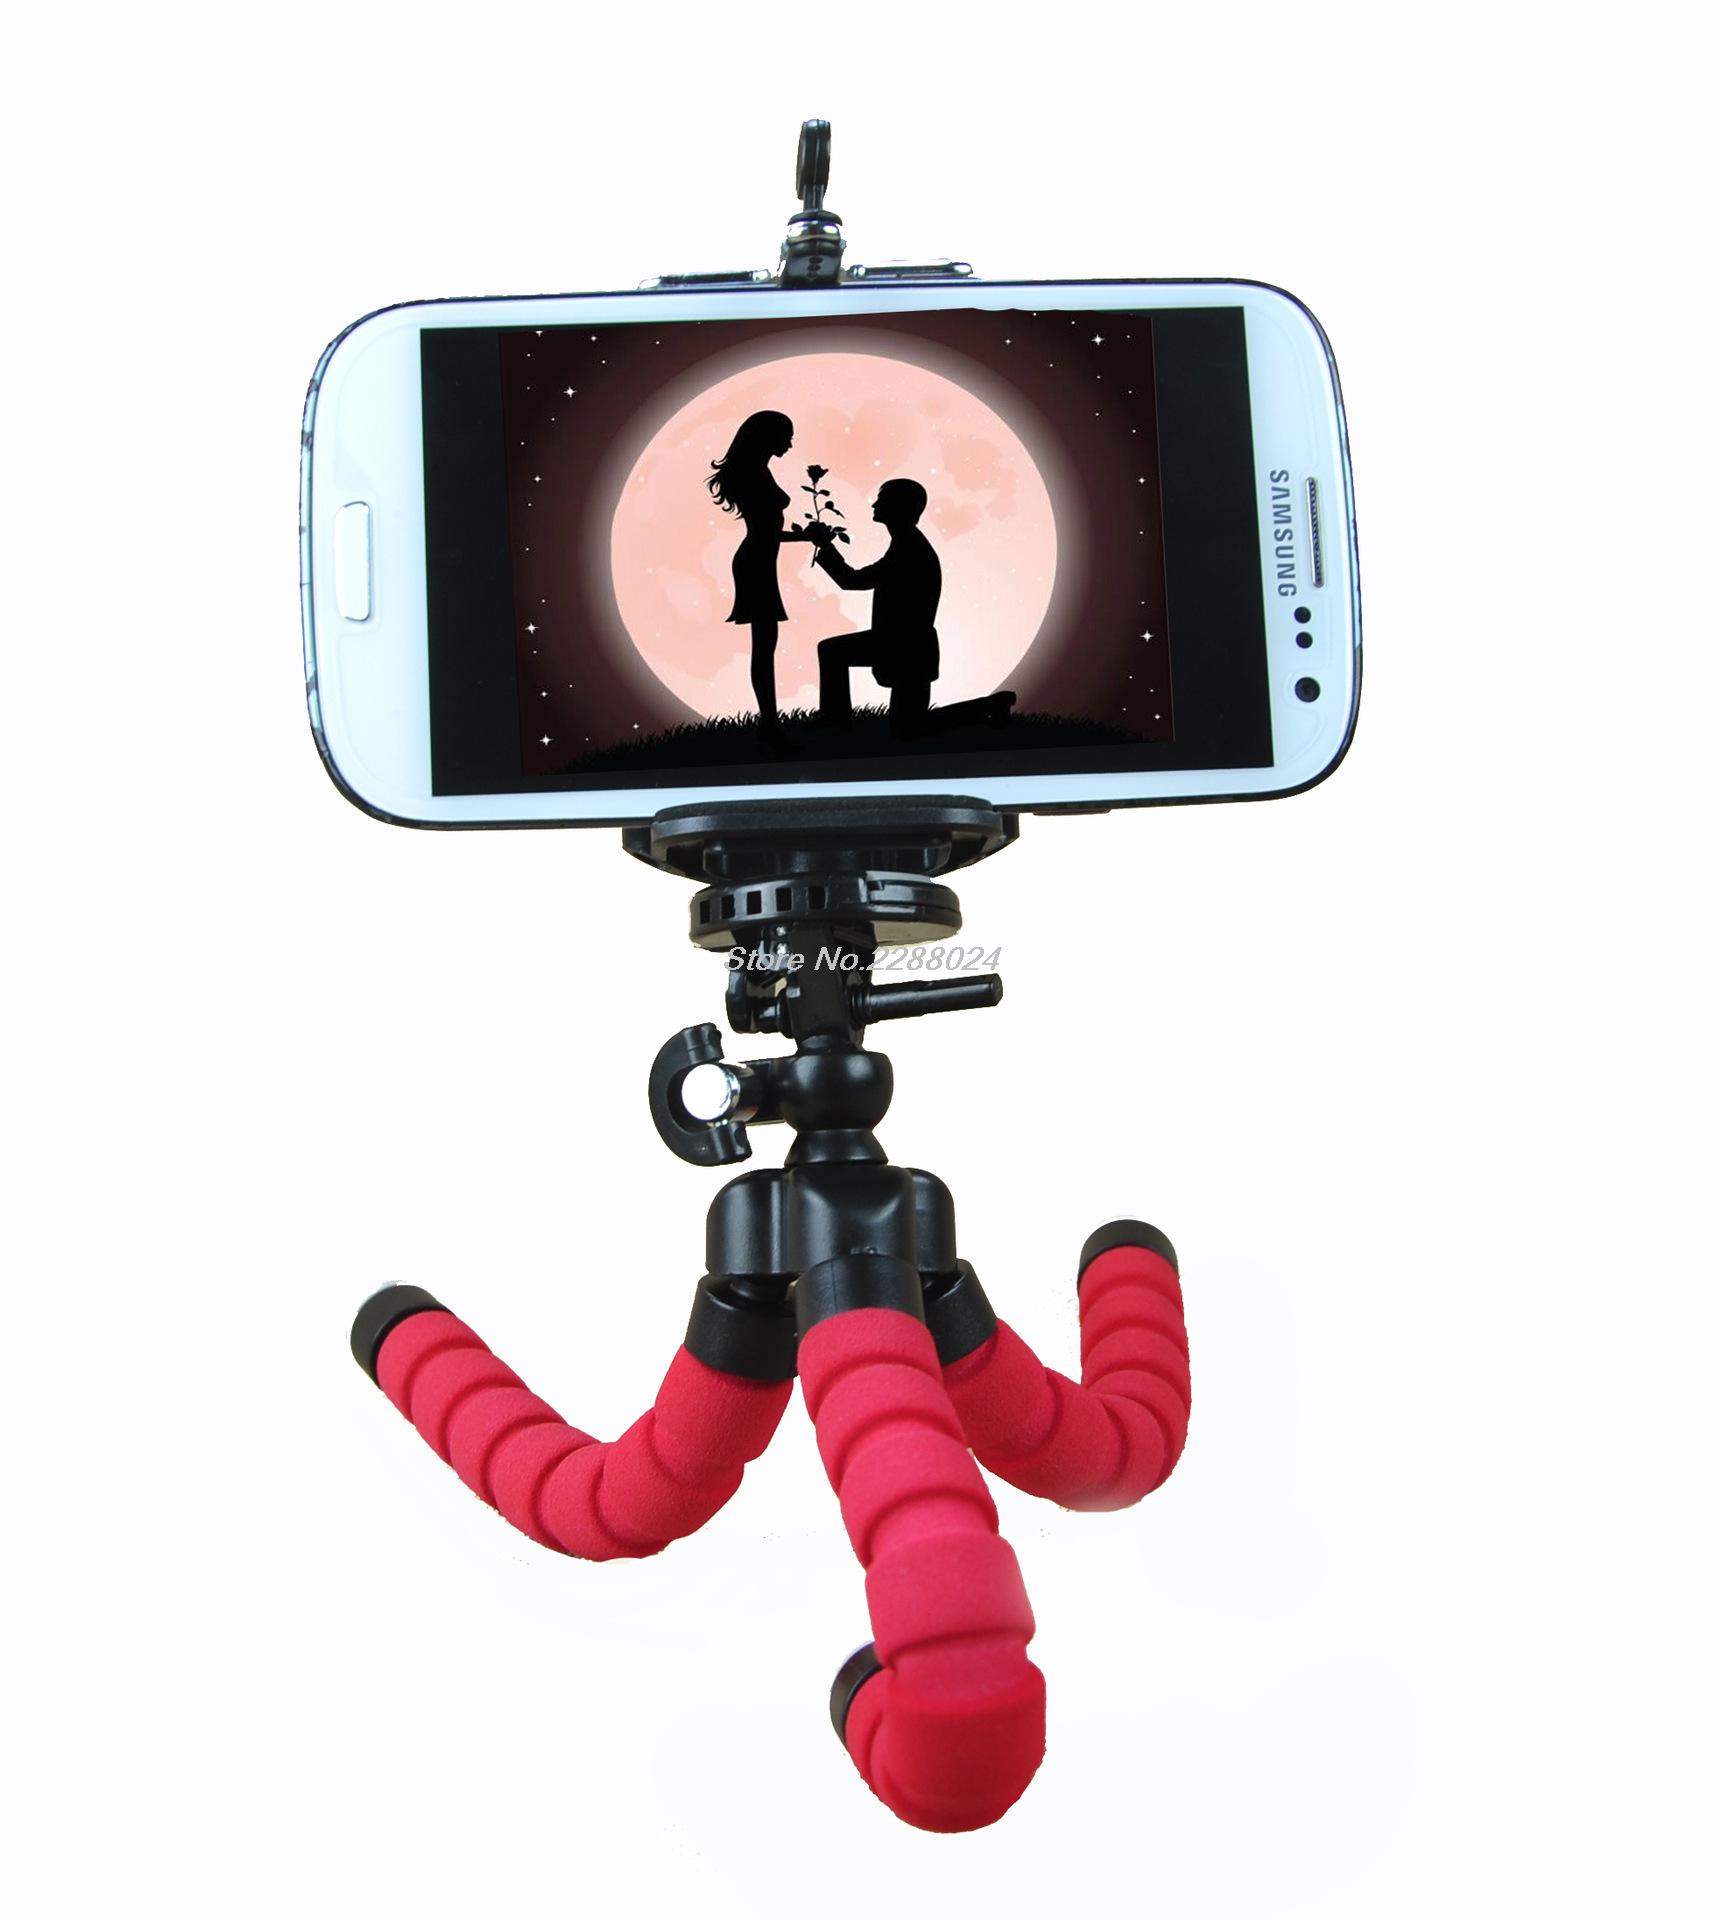 Hot Sale Car smartPhone screen protector Holder Flexible Octopus Tripod For Blackview BV5000 Ark Benefit M5 Plus s502 Plus